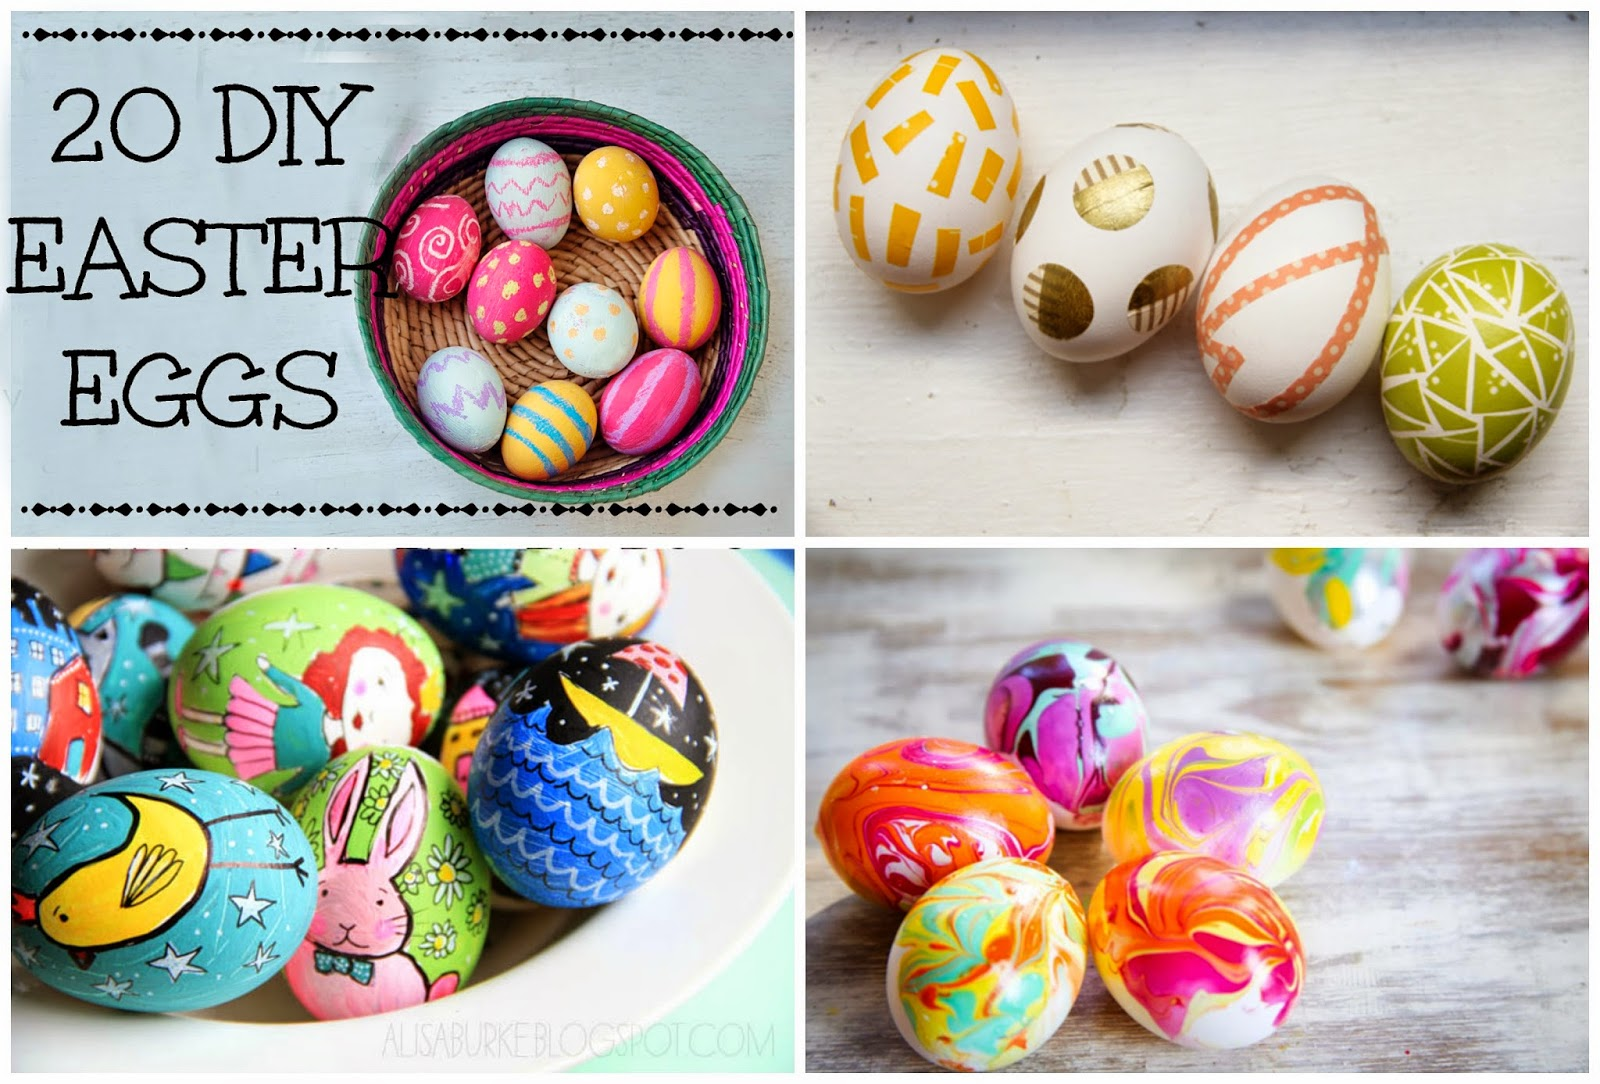 Little Treasures 20 Diy Easter Eggs